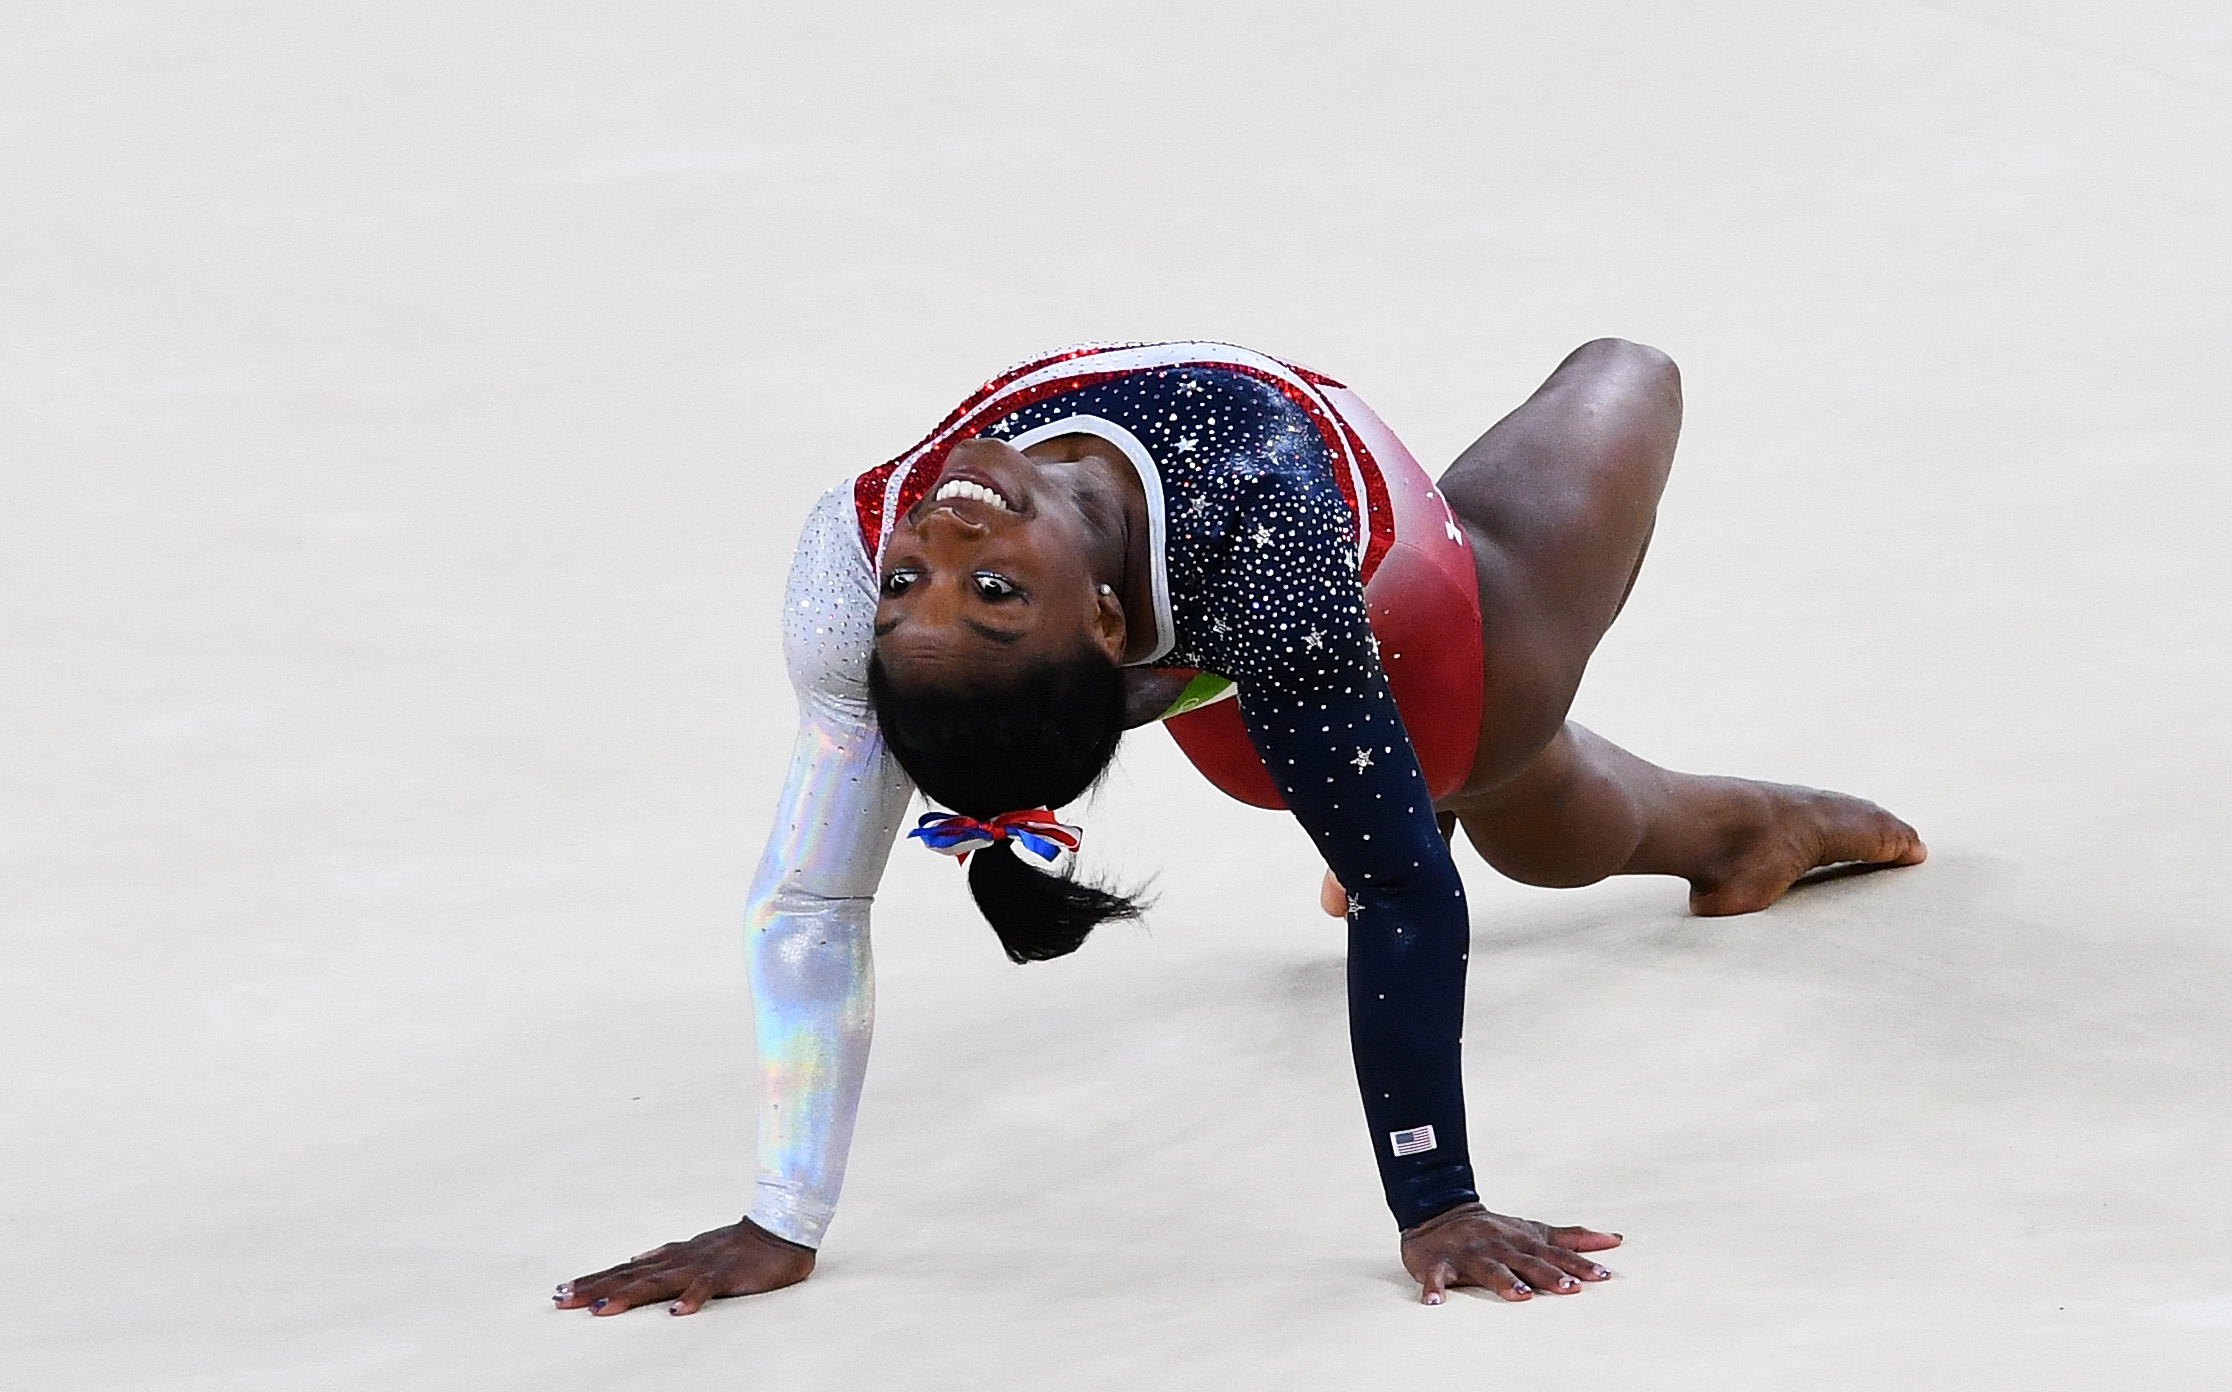 floor gymnastics olympics intended why do female gymnasts dance during floor routines men dont the olympics rule has oldtimey origins